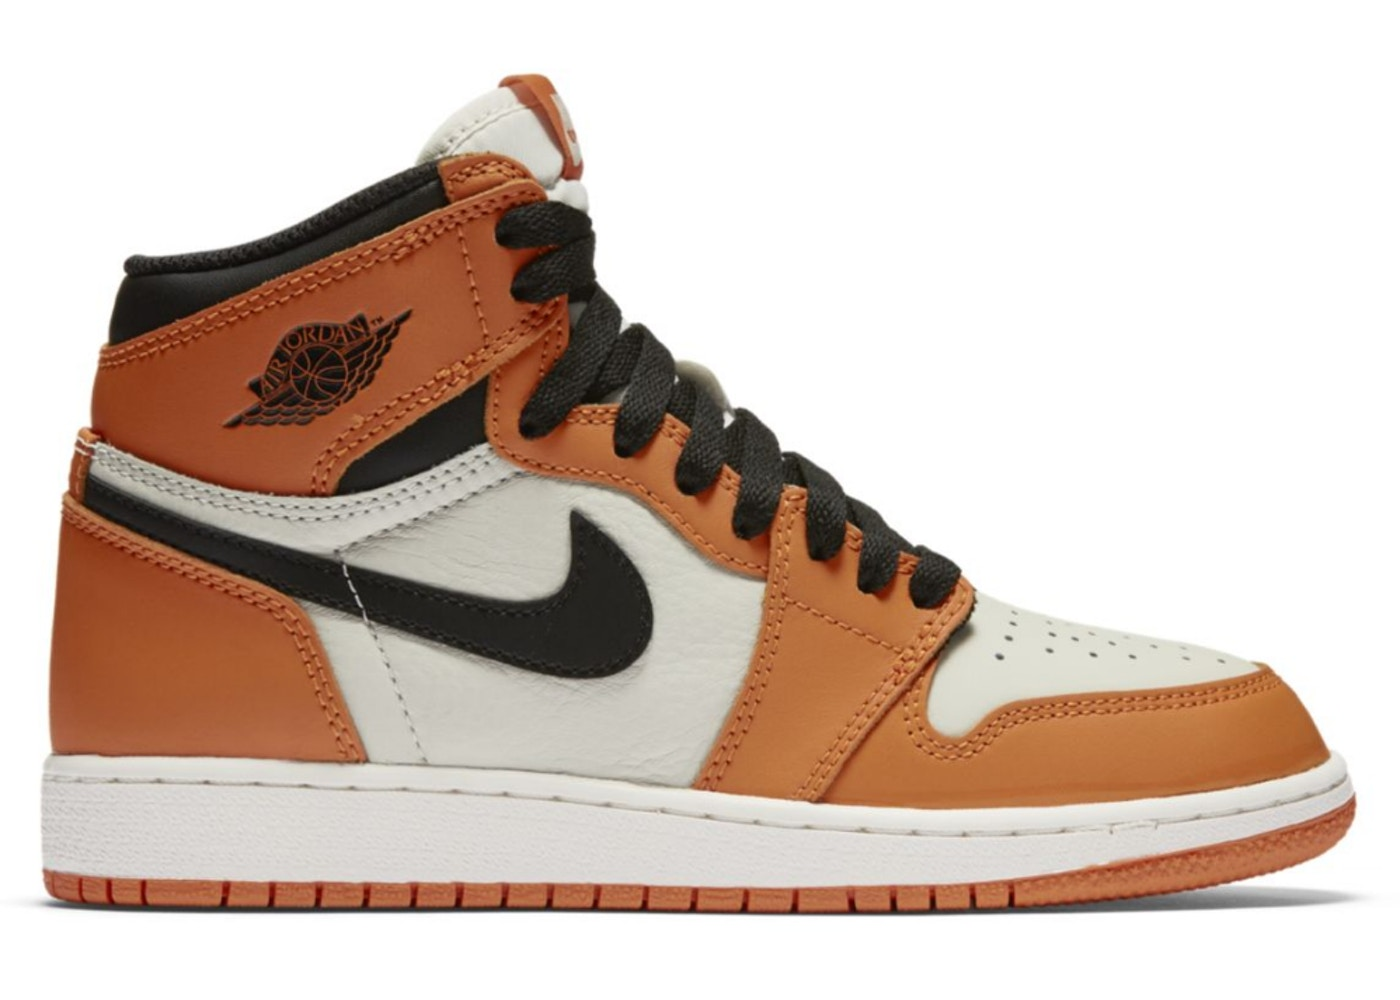 773fb85cba8c Sell. or Ask. Size  5.5Y. View All Bids. Jordan 1 Retro Reverse Shattered  Backboard ...